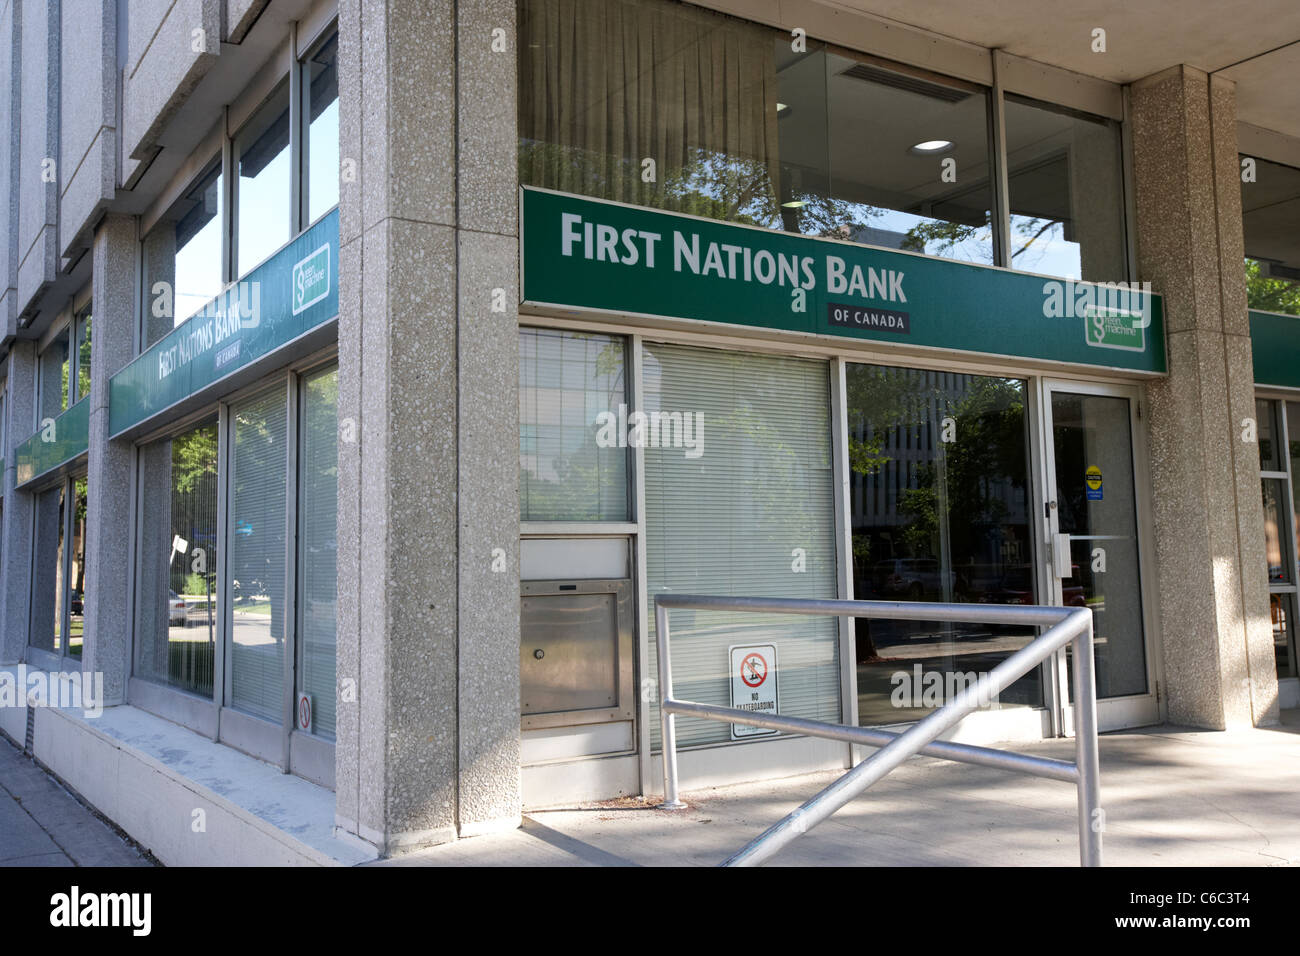 first nations bank of canada branch winnipeg manitoba canada - Stock Image